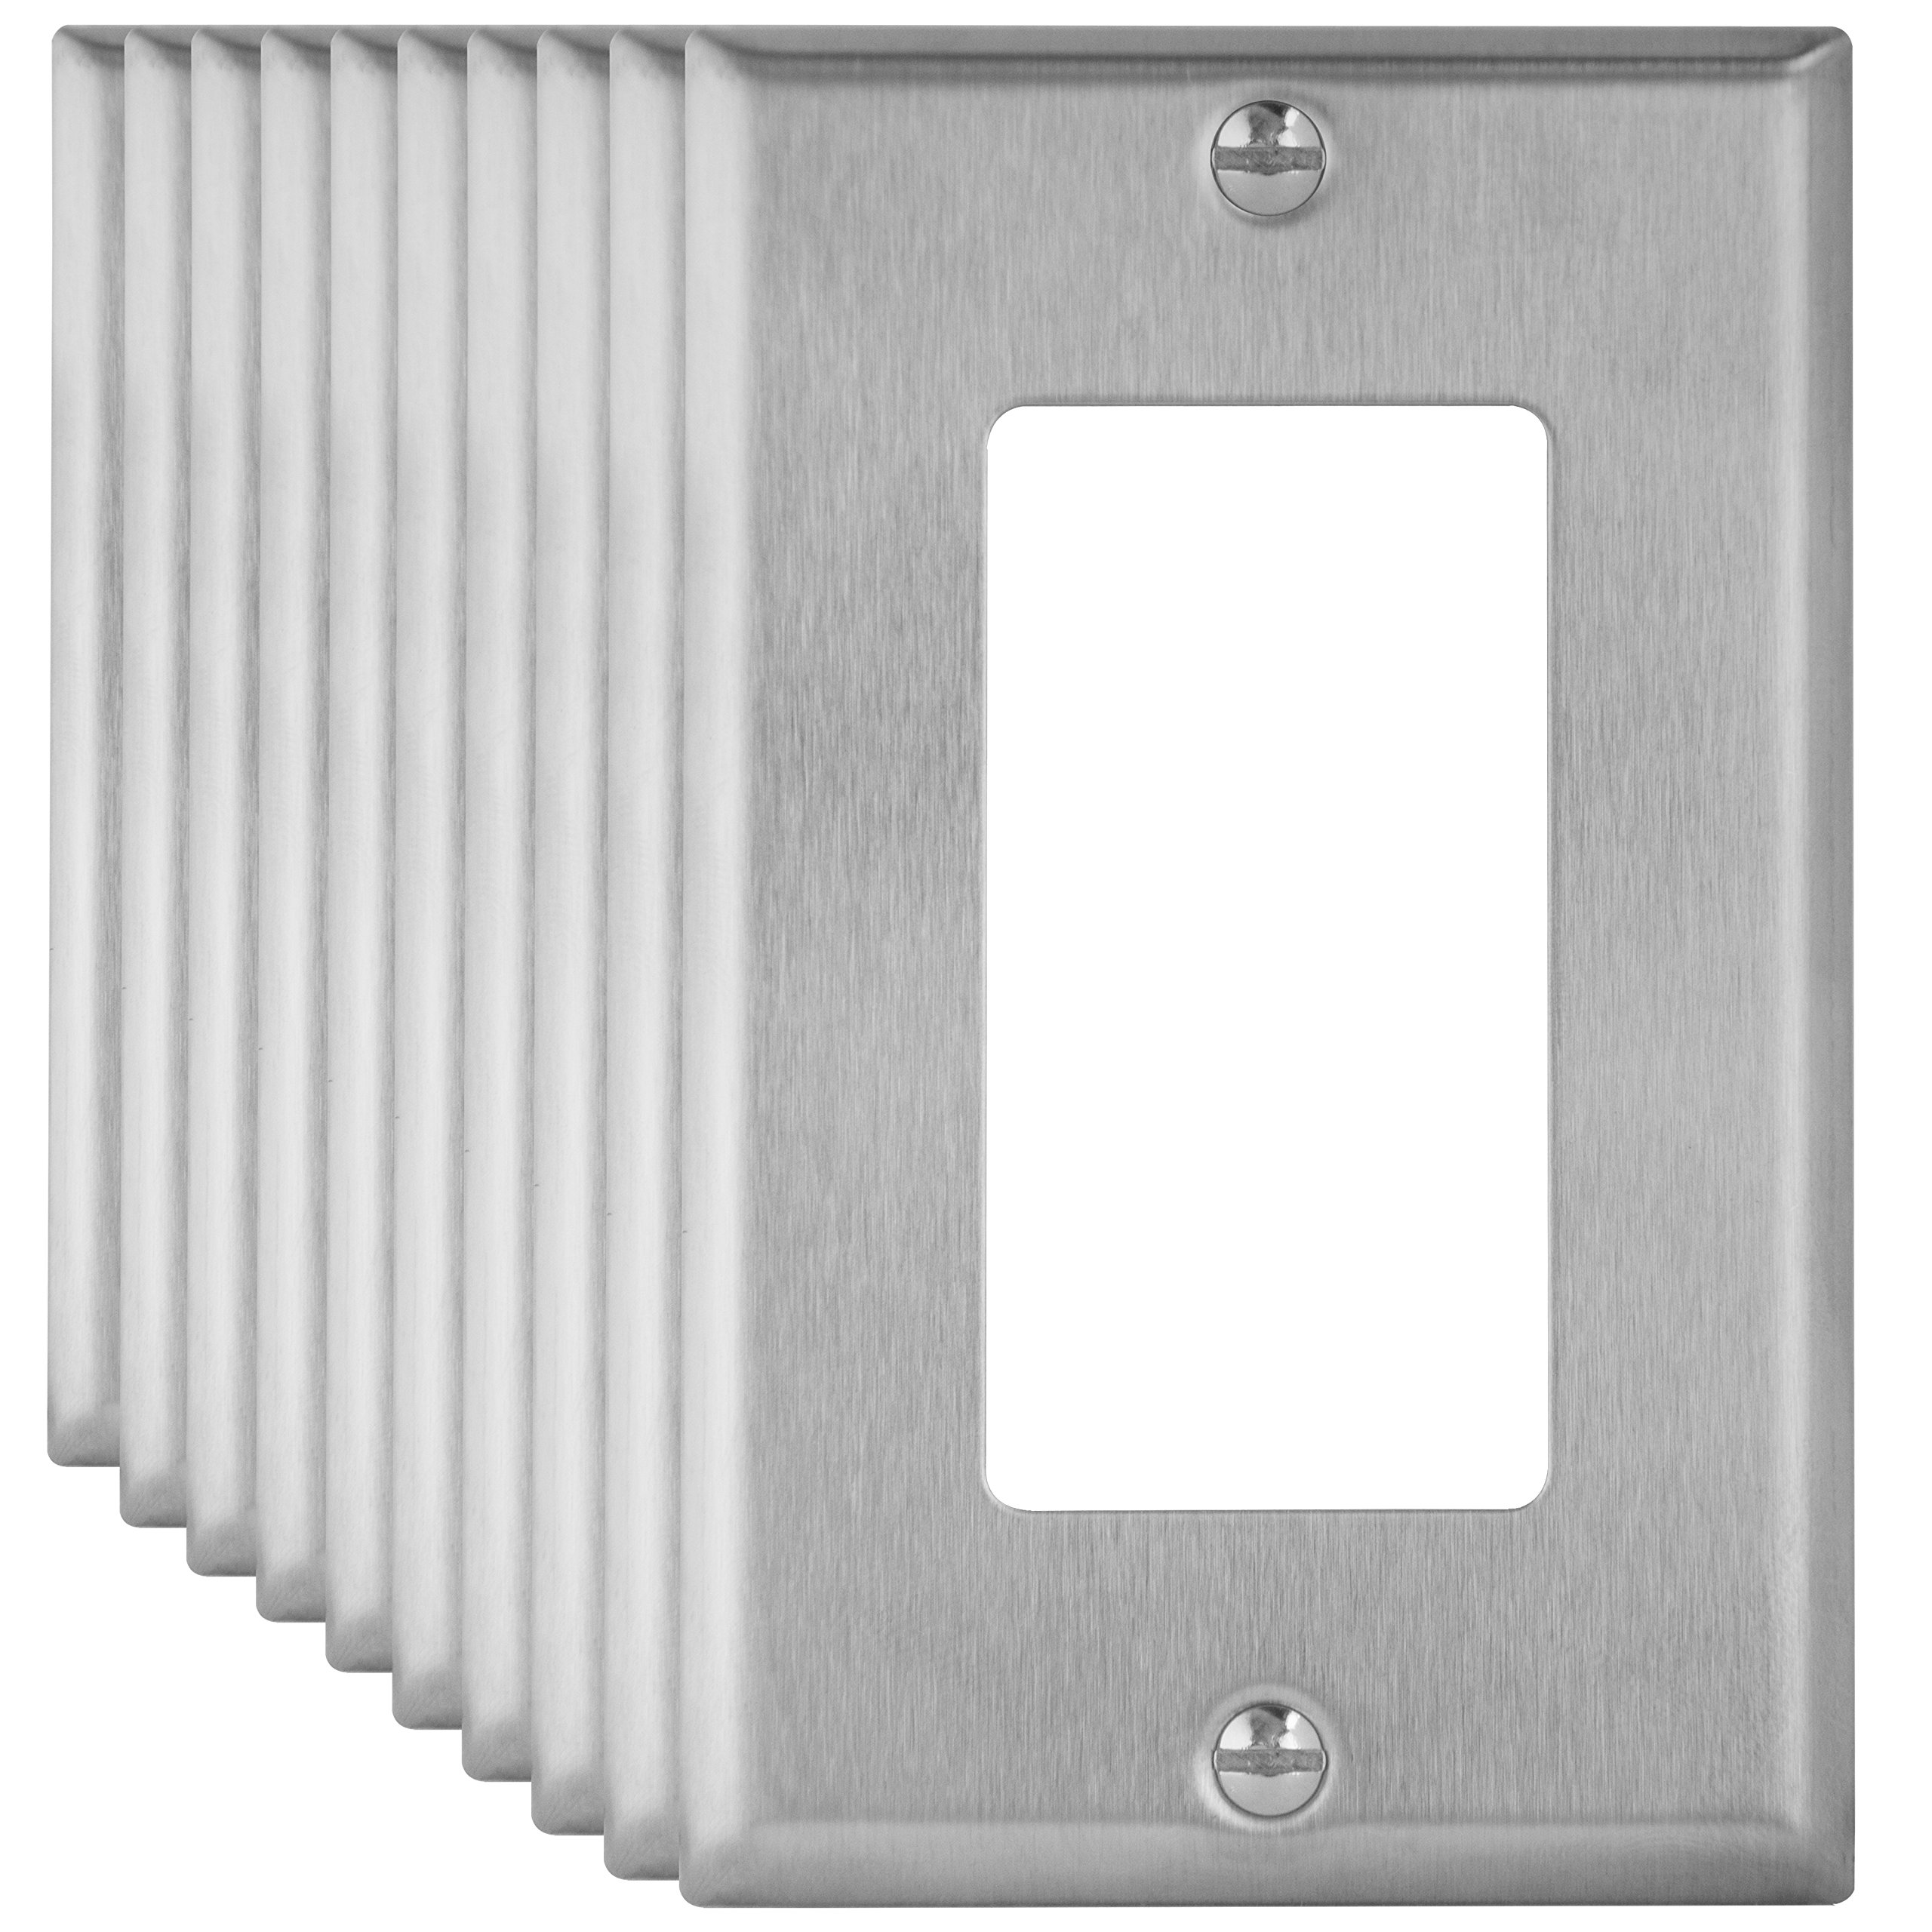 Enerlites 7731-10PCS Decorator Swtich Stainless Steel Wall Plate 1-Gang, Standard Size, 430 Grade Metal Plate Alloy Corrosive Resistant Cover for Rocker Paddle Light Switch GFCI Devices (10 Pack)